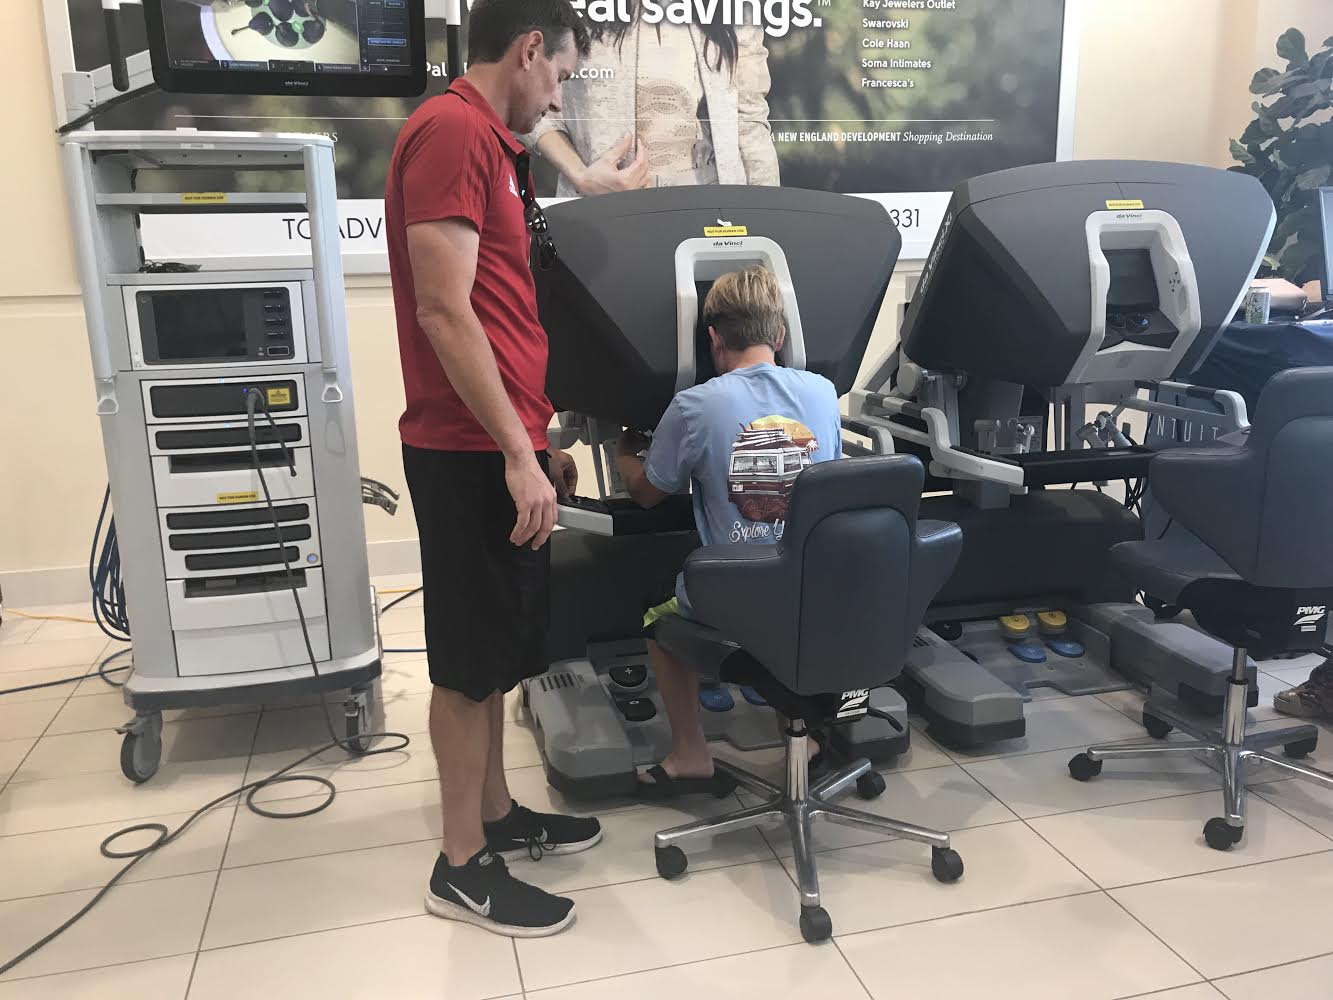 With the help of a Good Samaritan Medical Center staff member, sixth grader Colby Mack (seated) tries his hand at controlling the da Vinci Xi.